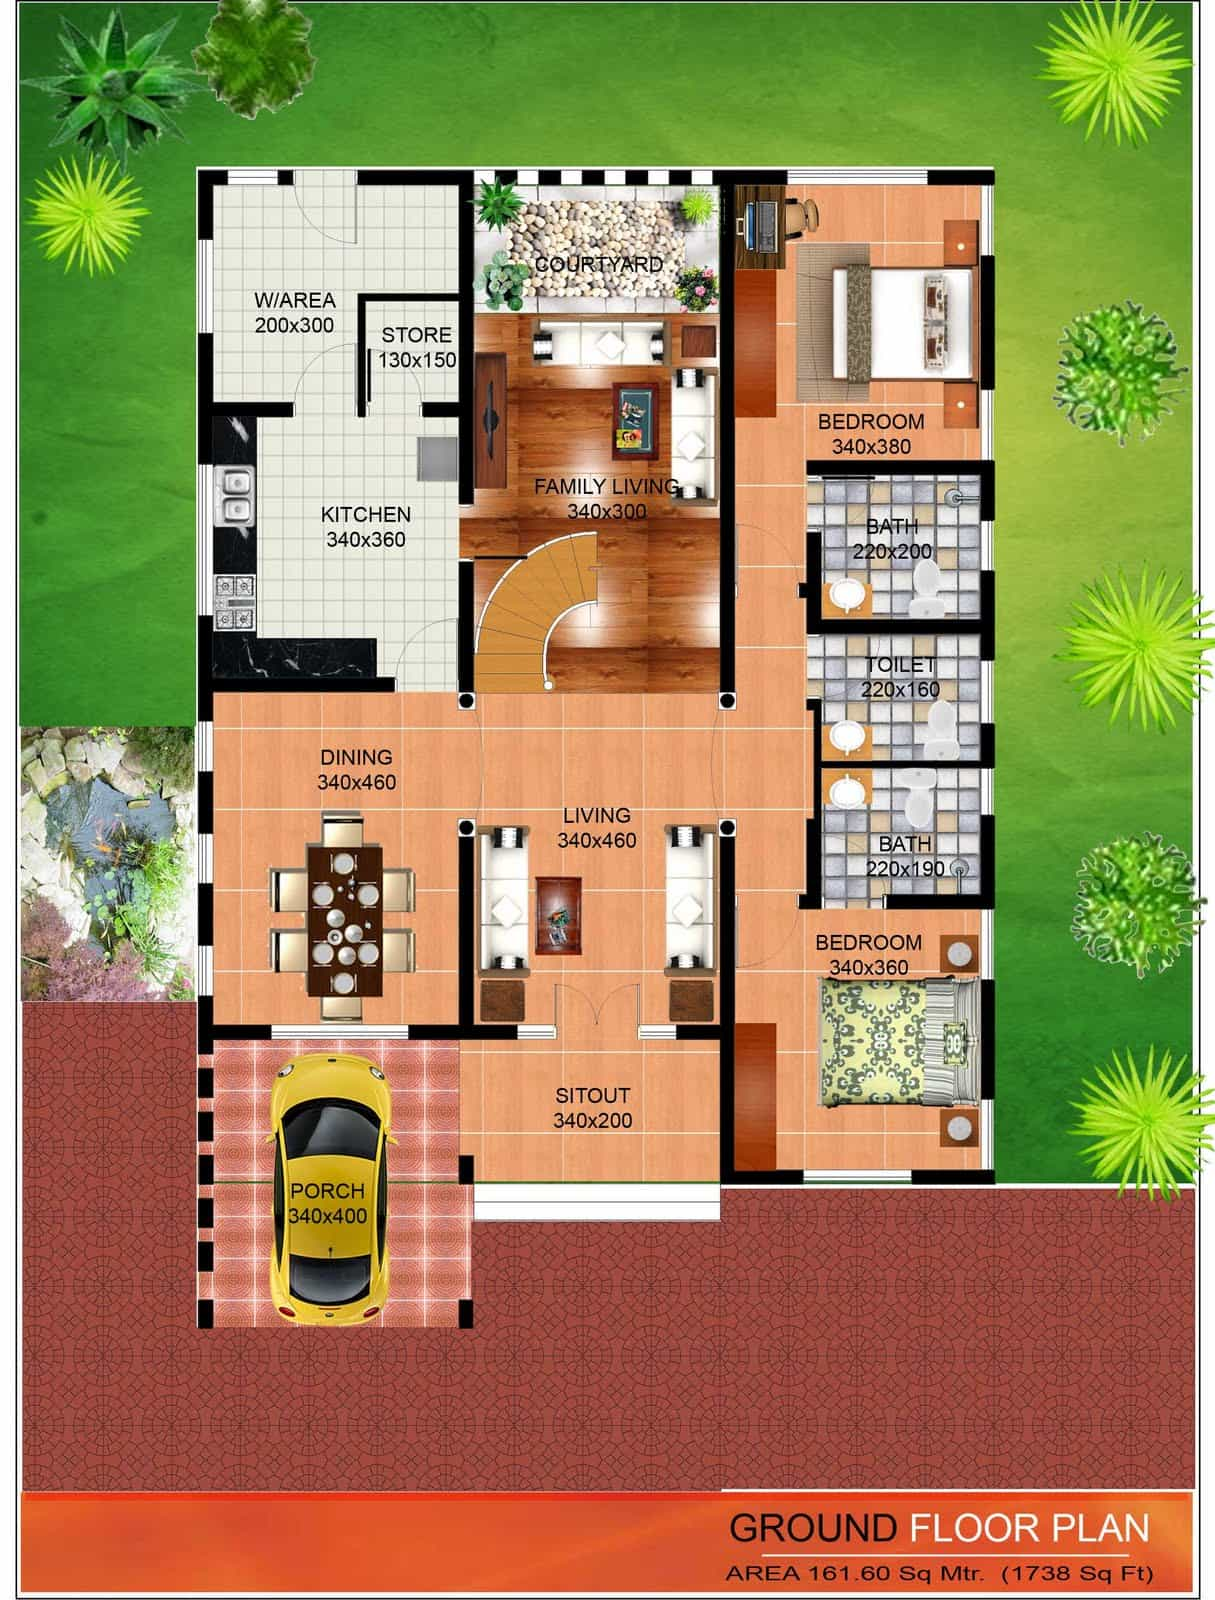 Ground Floor Elevation Colors : Latest kerala house plan and elevation at sq ft